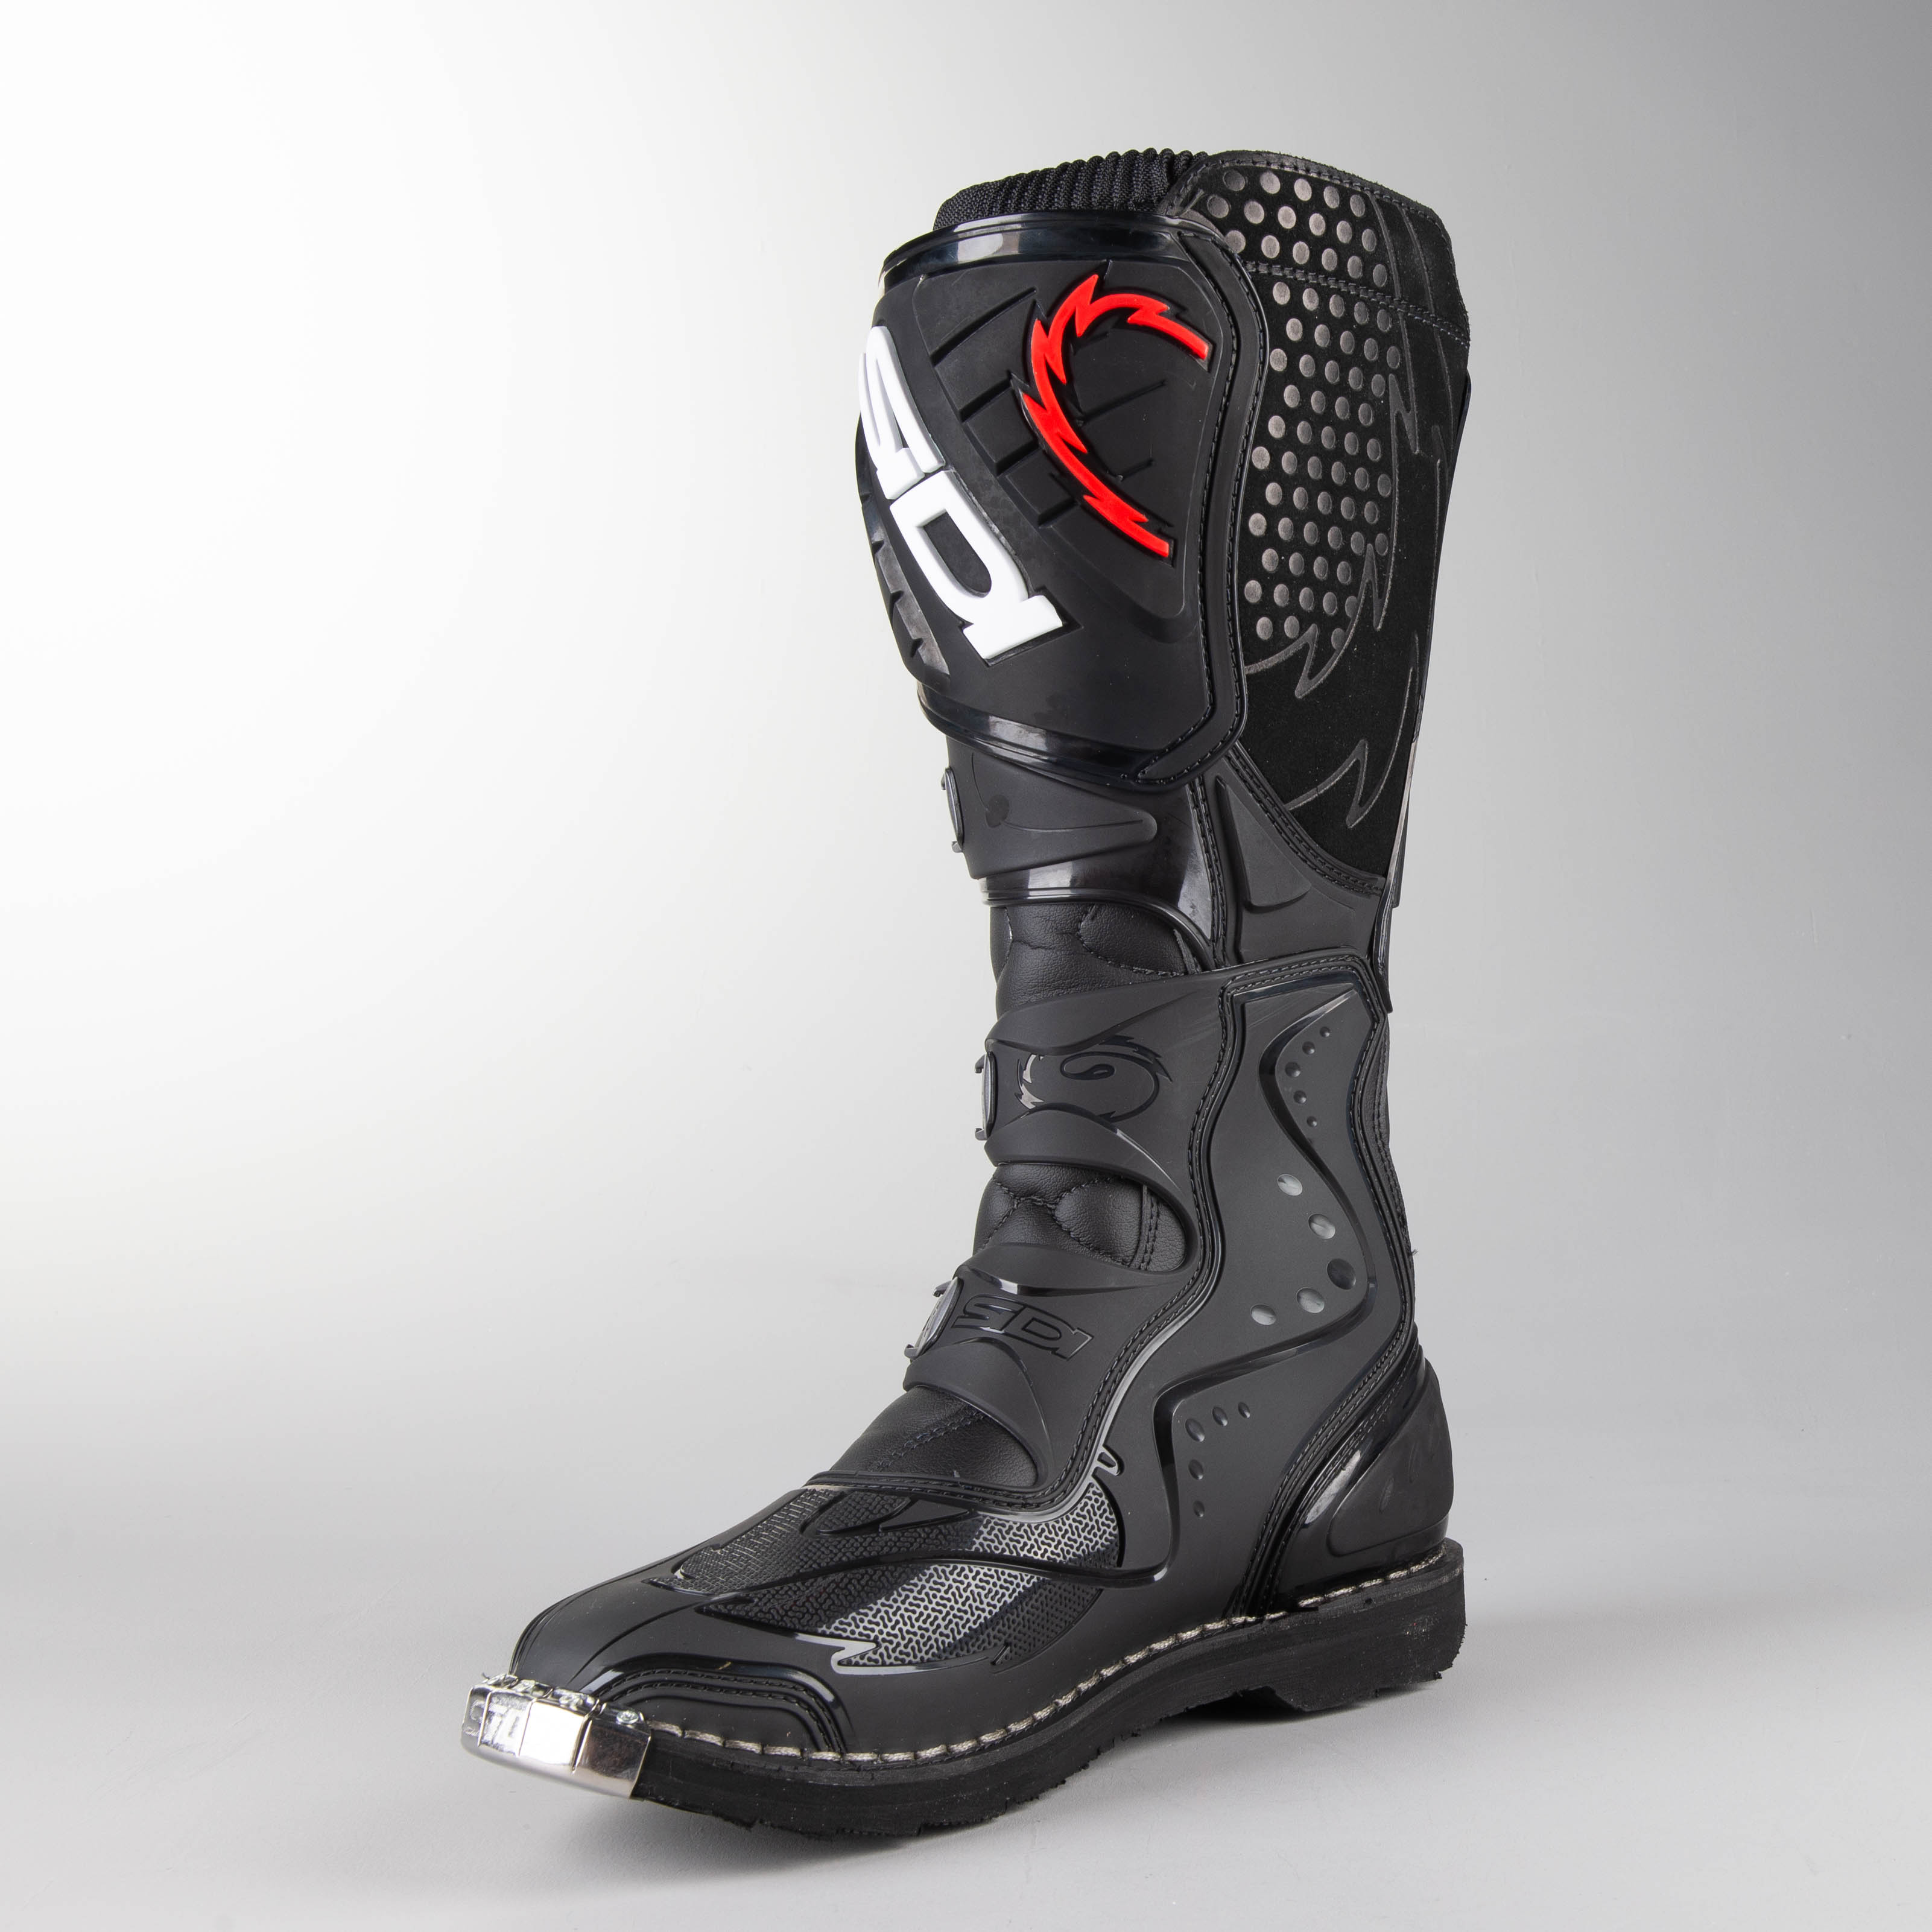 Sidi Agueda MX Boots Black Buy now, get 12% off